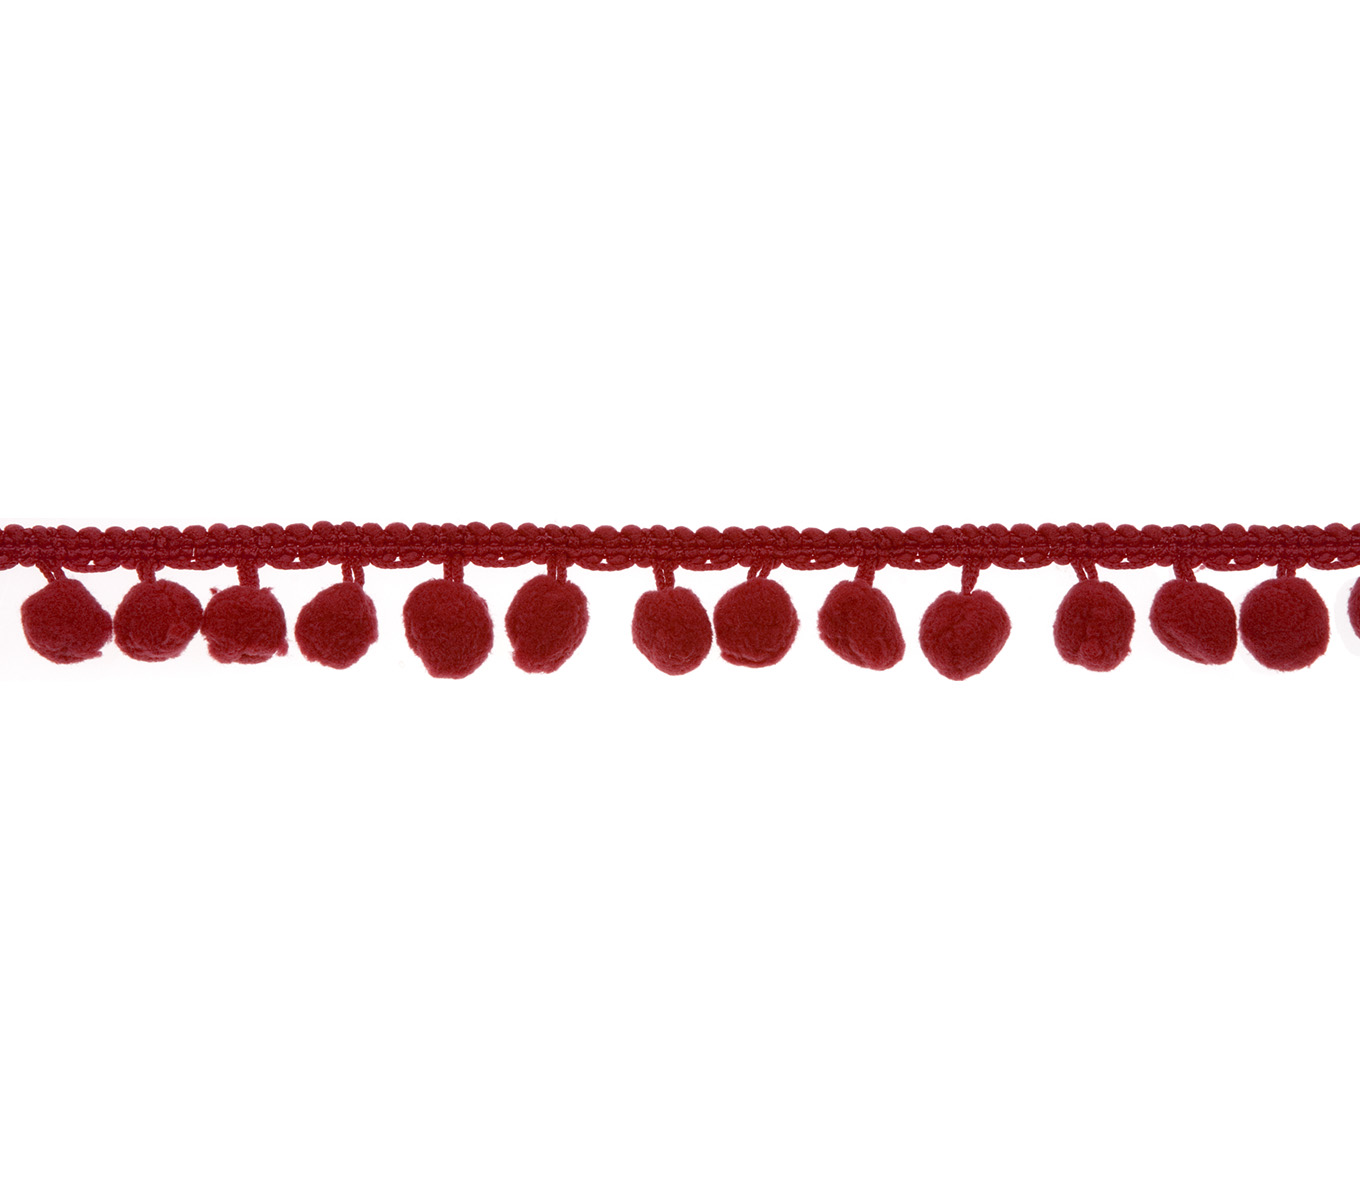 Simplicity 0.75\u0022x4 ft Large Pom Apparel Trim